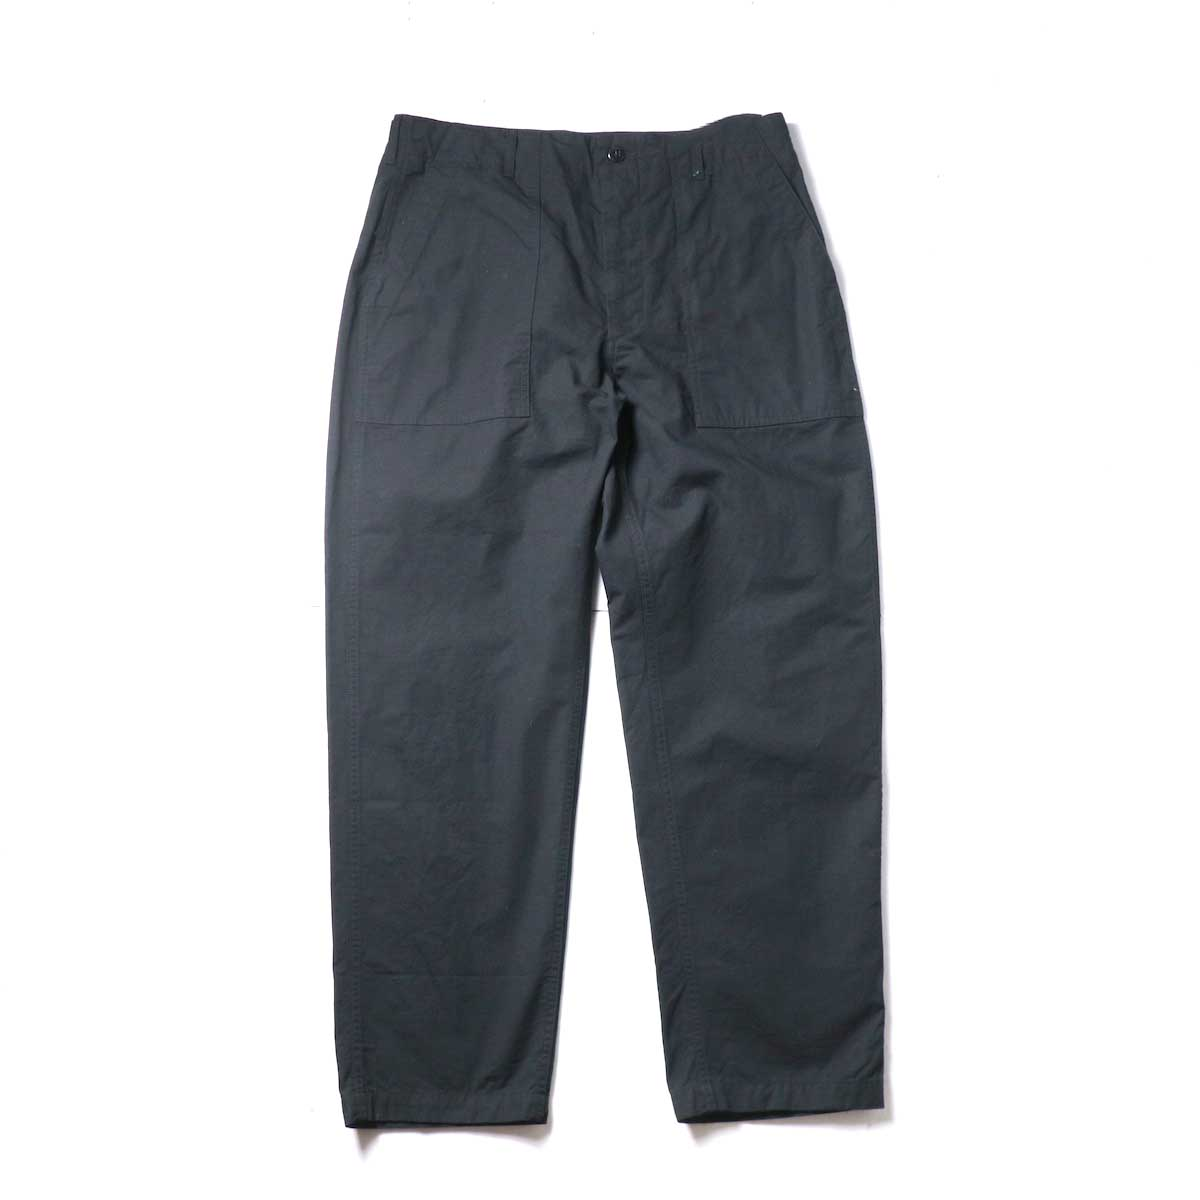 Engineered Garments / Fatigue Pant - Cotton Ripstop (Black)正面